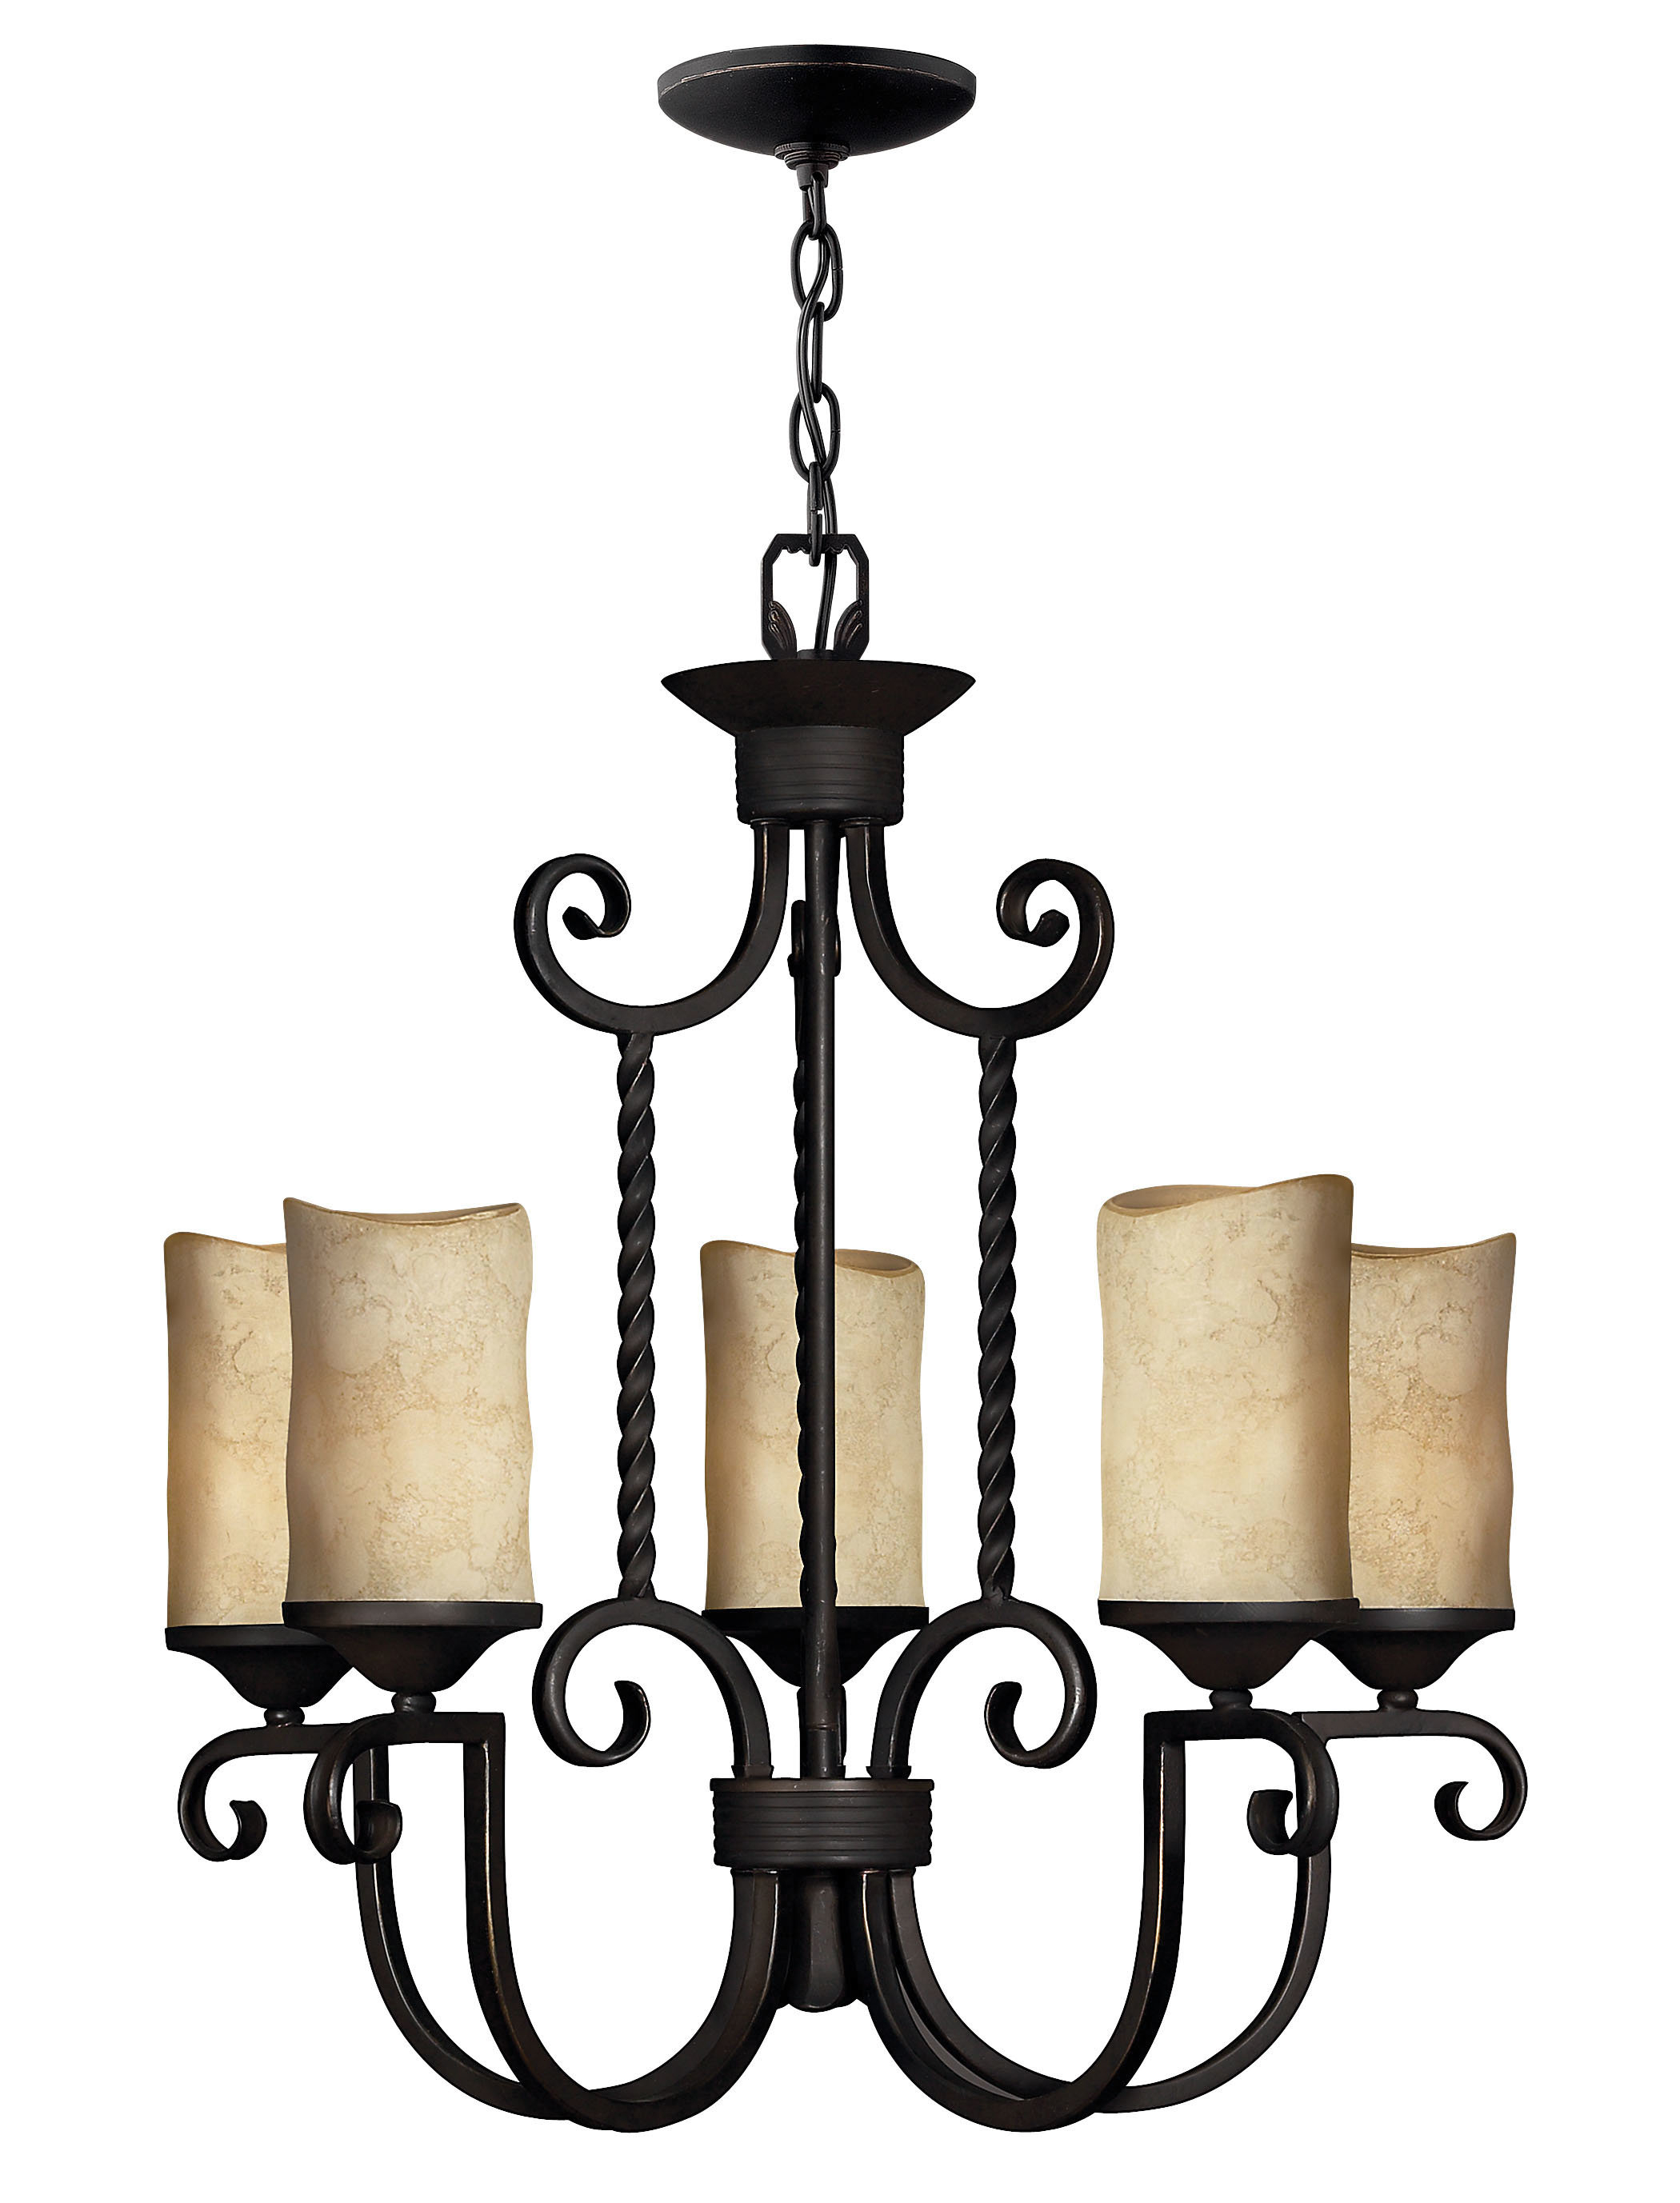 Suki 5 Light Shaded Chandelier | Wayfair Regarding Suki 5 Light Shaded Chandeliers (View 21 of 30)